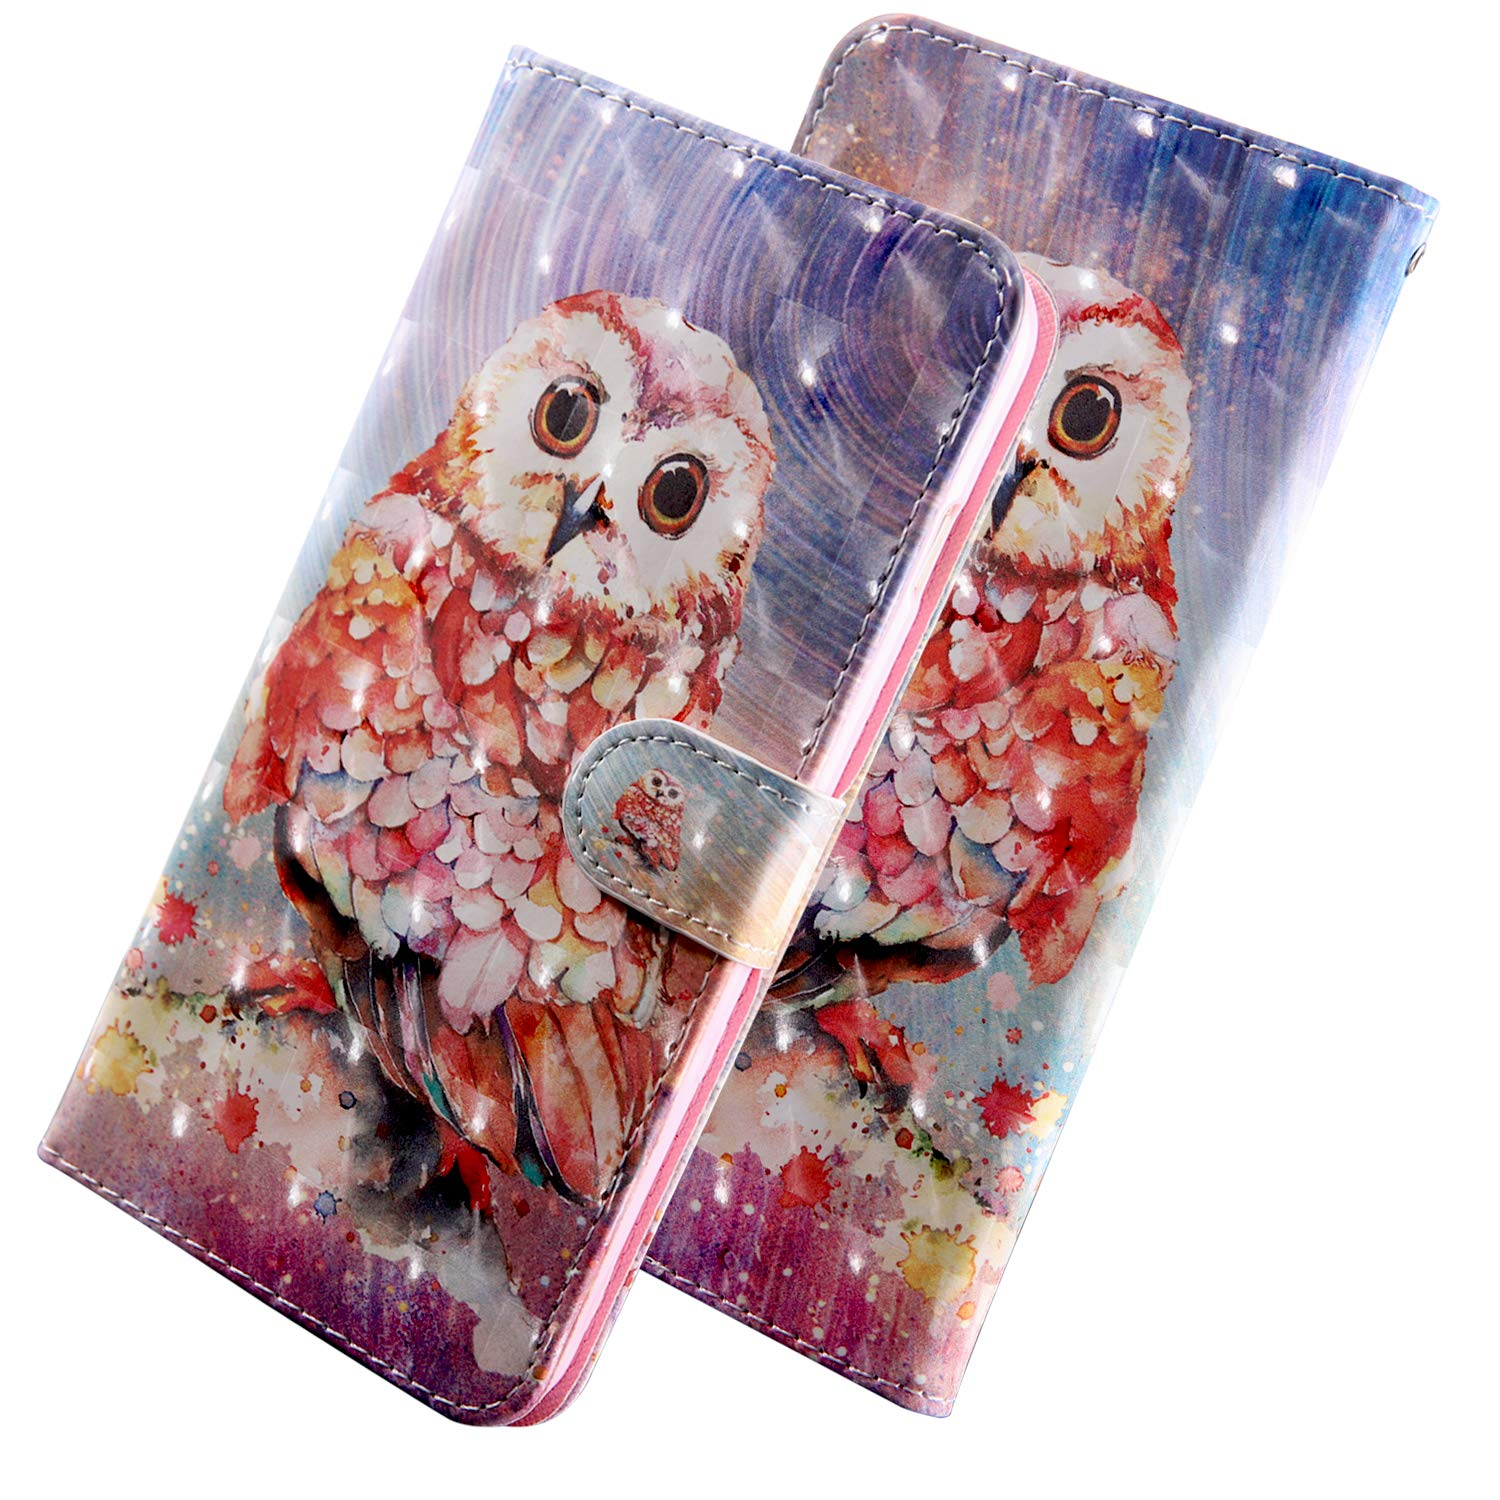 3D Pattern Design Wallet Flip Case for Apple iPhone 11 #3 Lace Bear Village iPhone 11 Case PU Leather Book Style Cover with Card Slots